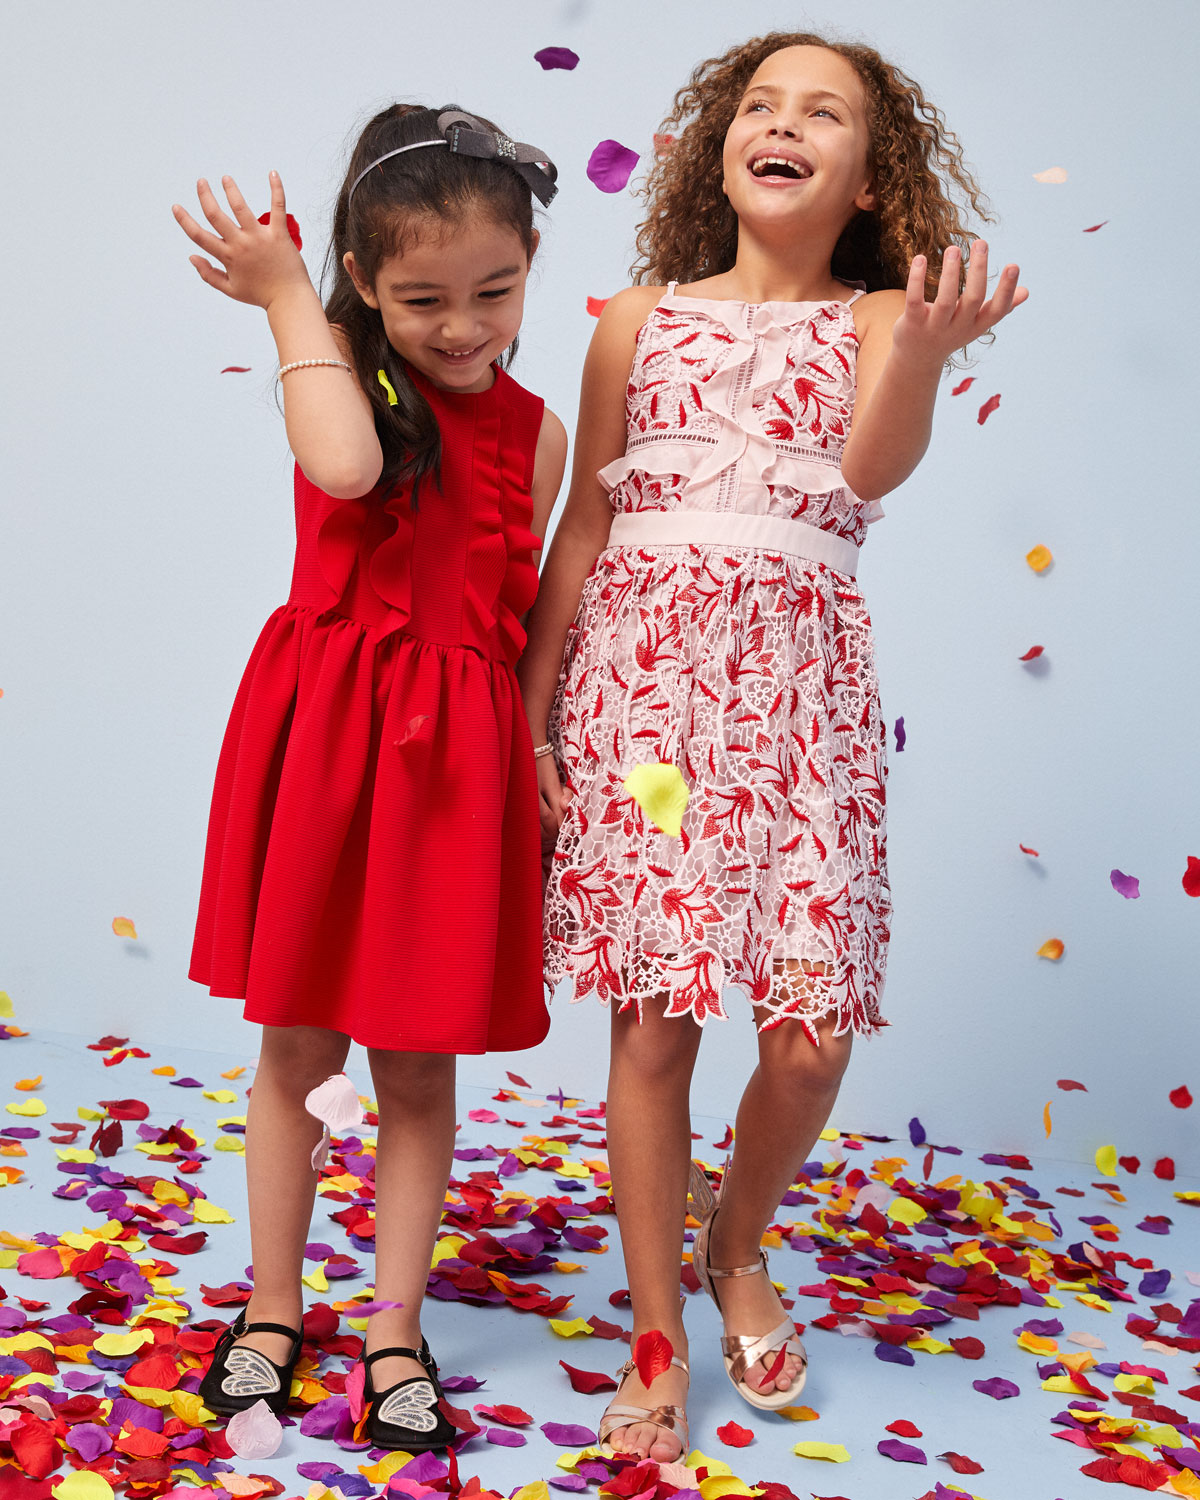 Children S High Fashion Clothing - Image Of Fashion